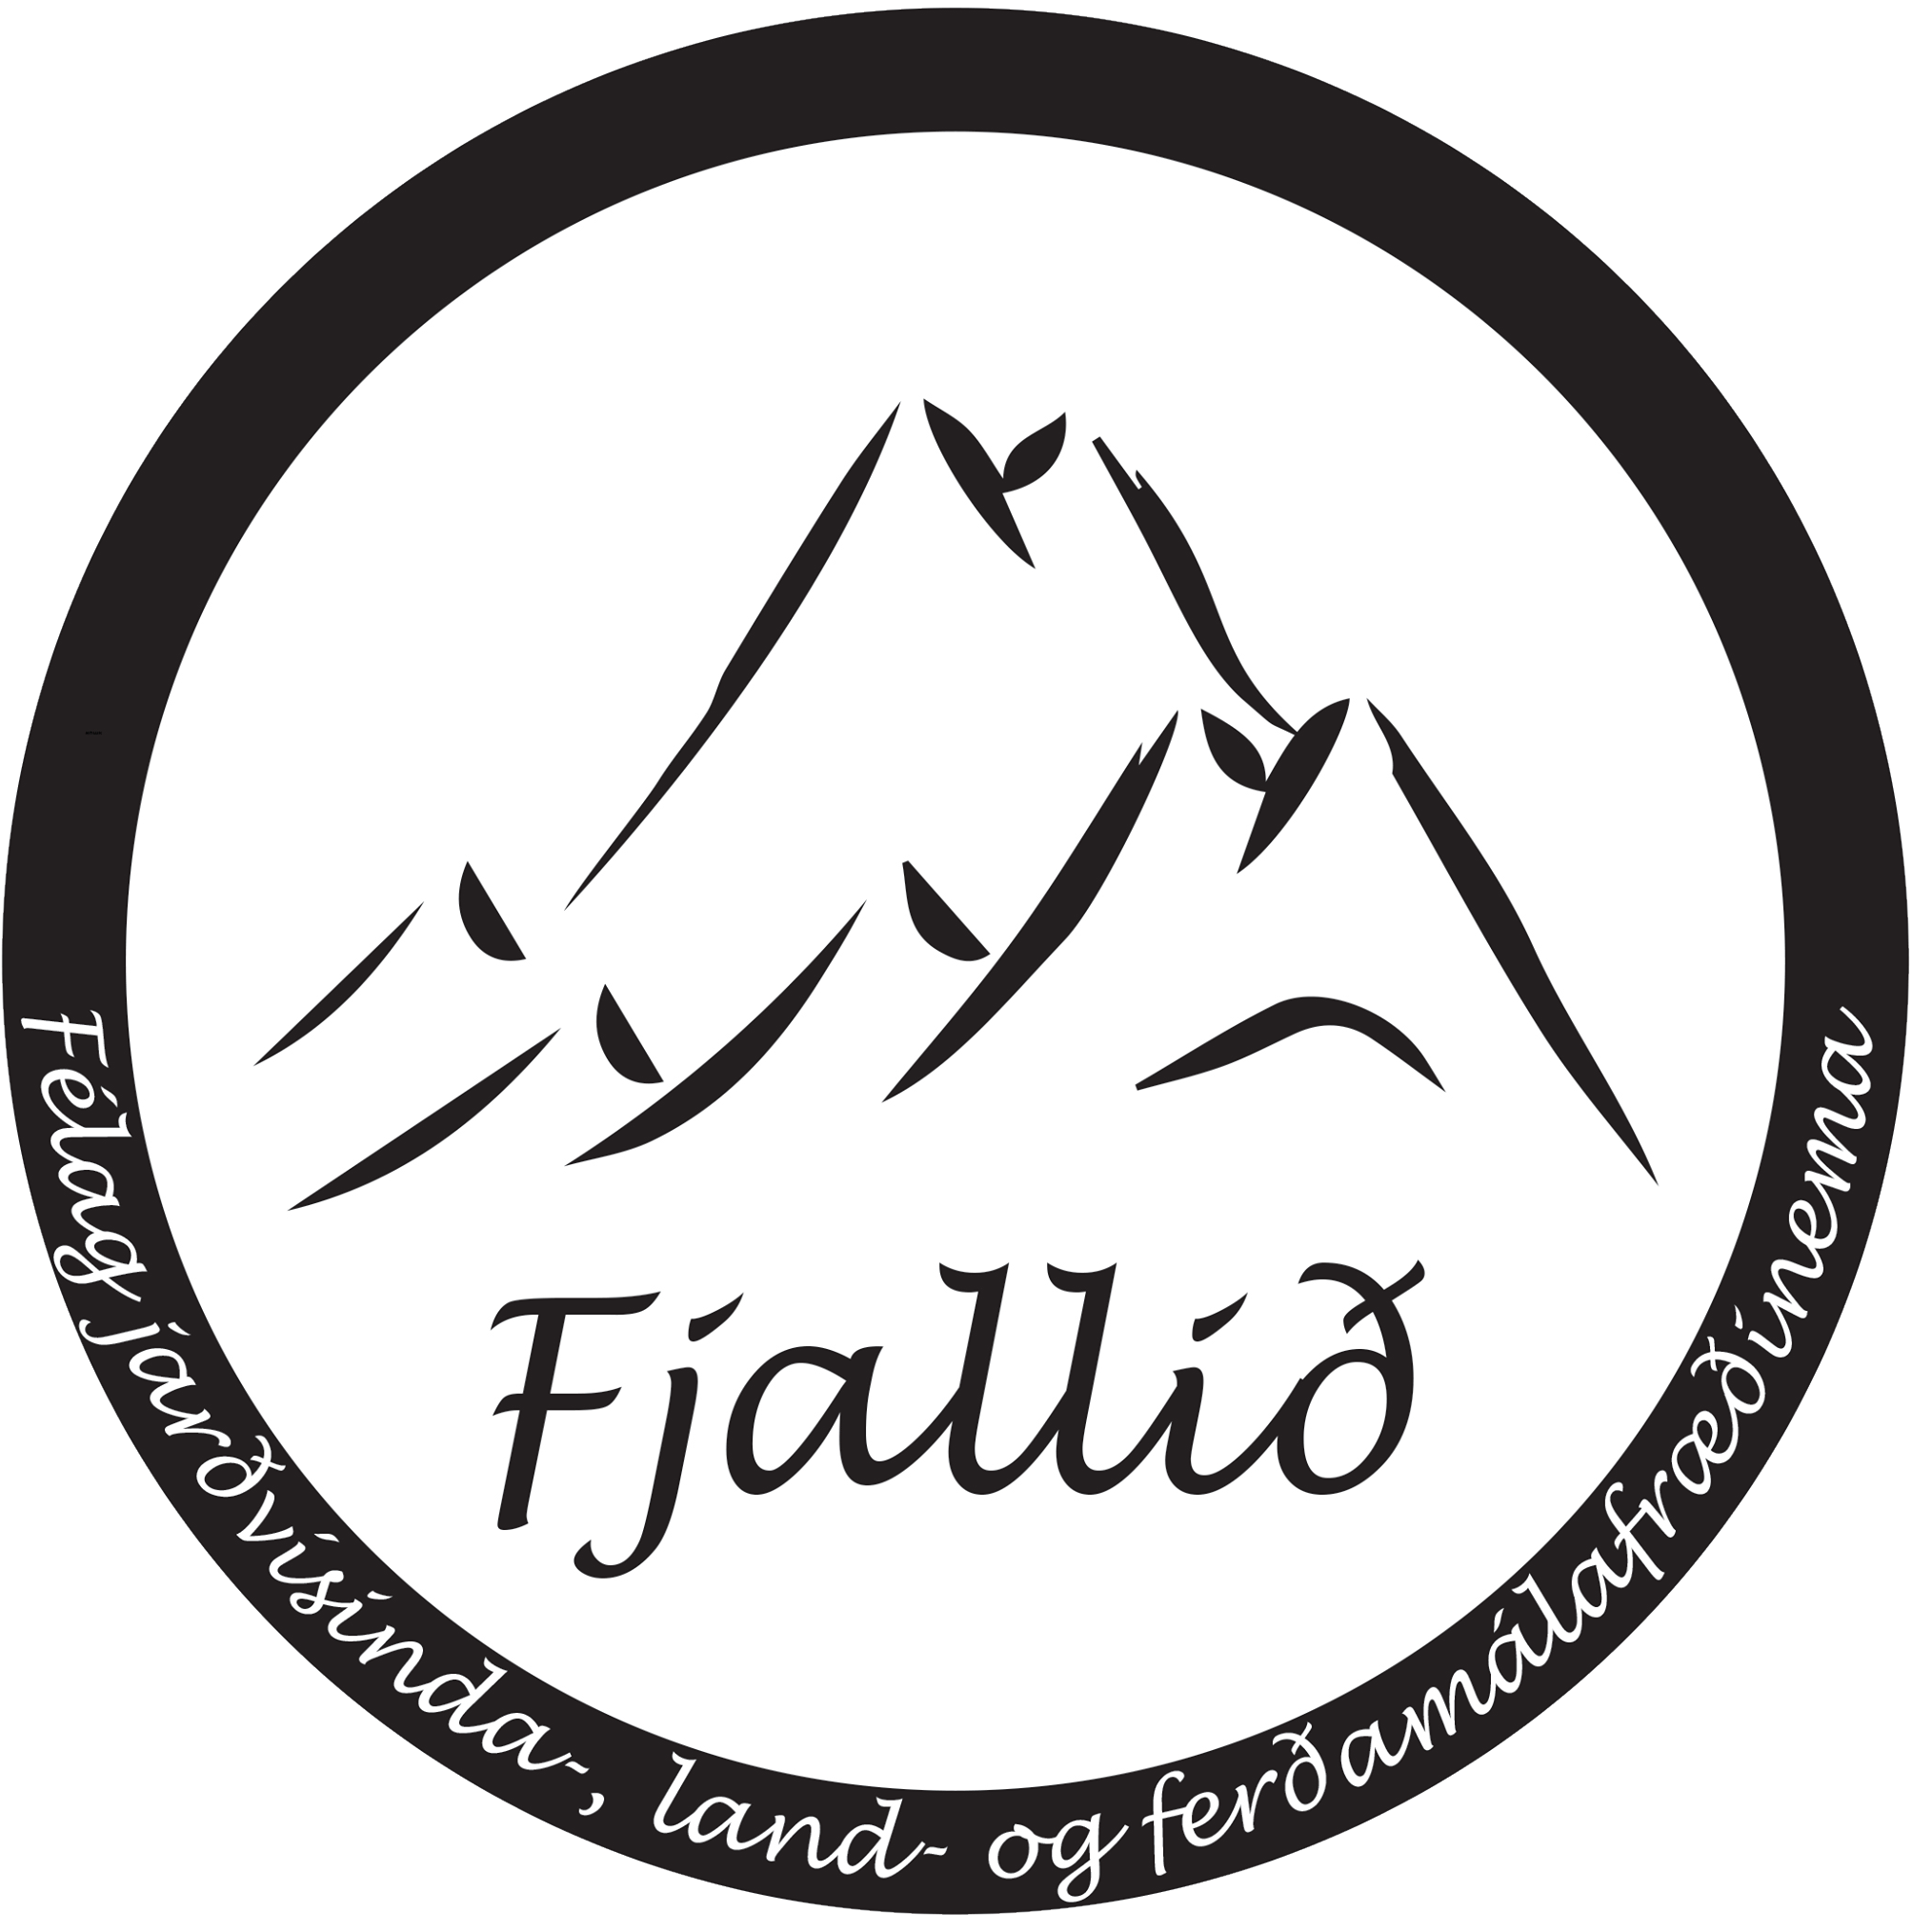 Fjallið, Association of geoscience, geography and tourism students